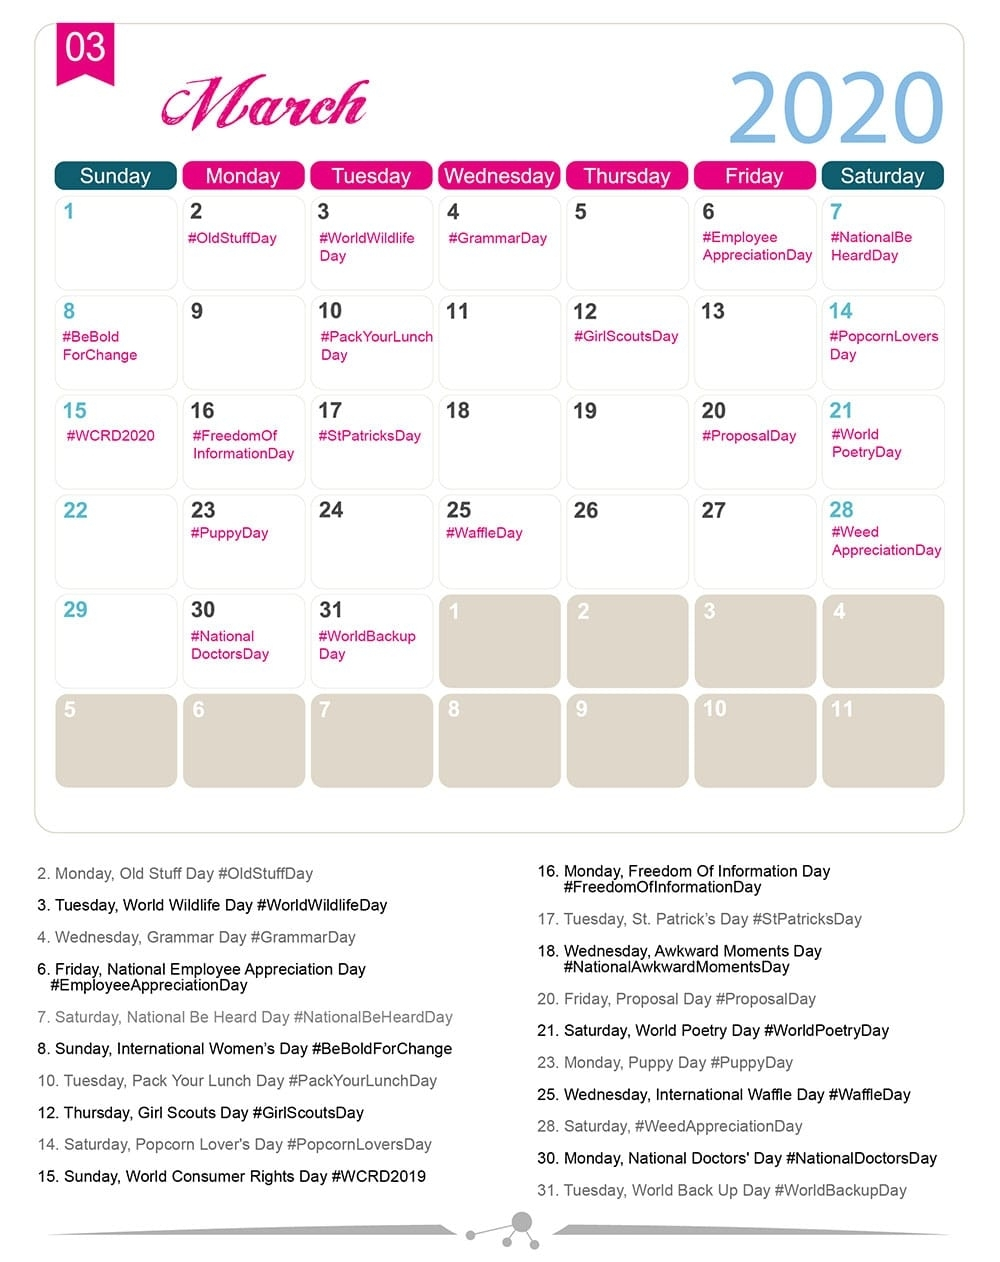 The 2020 Social Media Holiday Calendar - Make A Website Hub with regard to Spec Ial Days In 2020